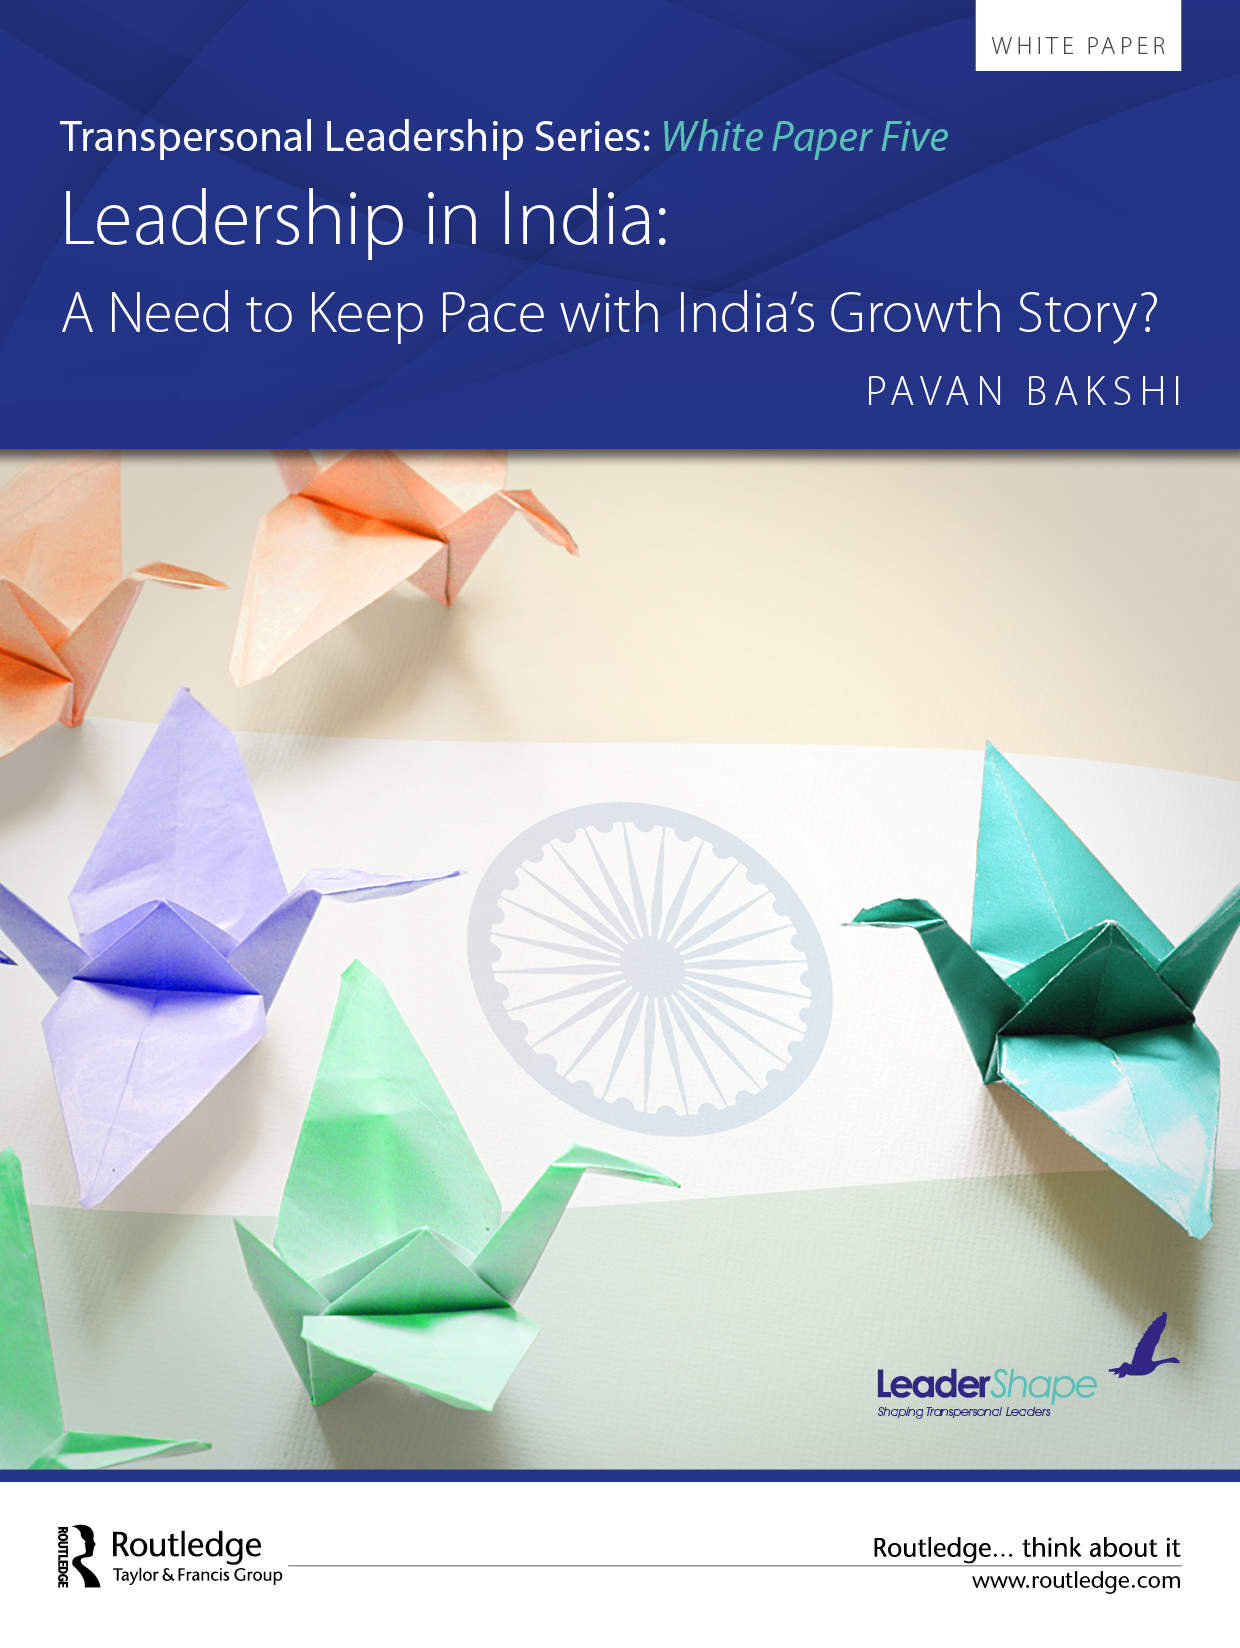 Leadership in India: A Need to Keep Pace with India's Growth Story?